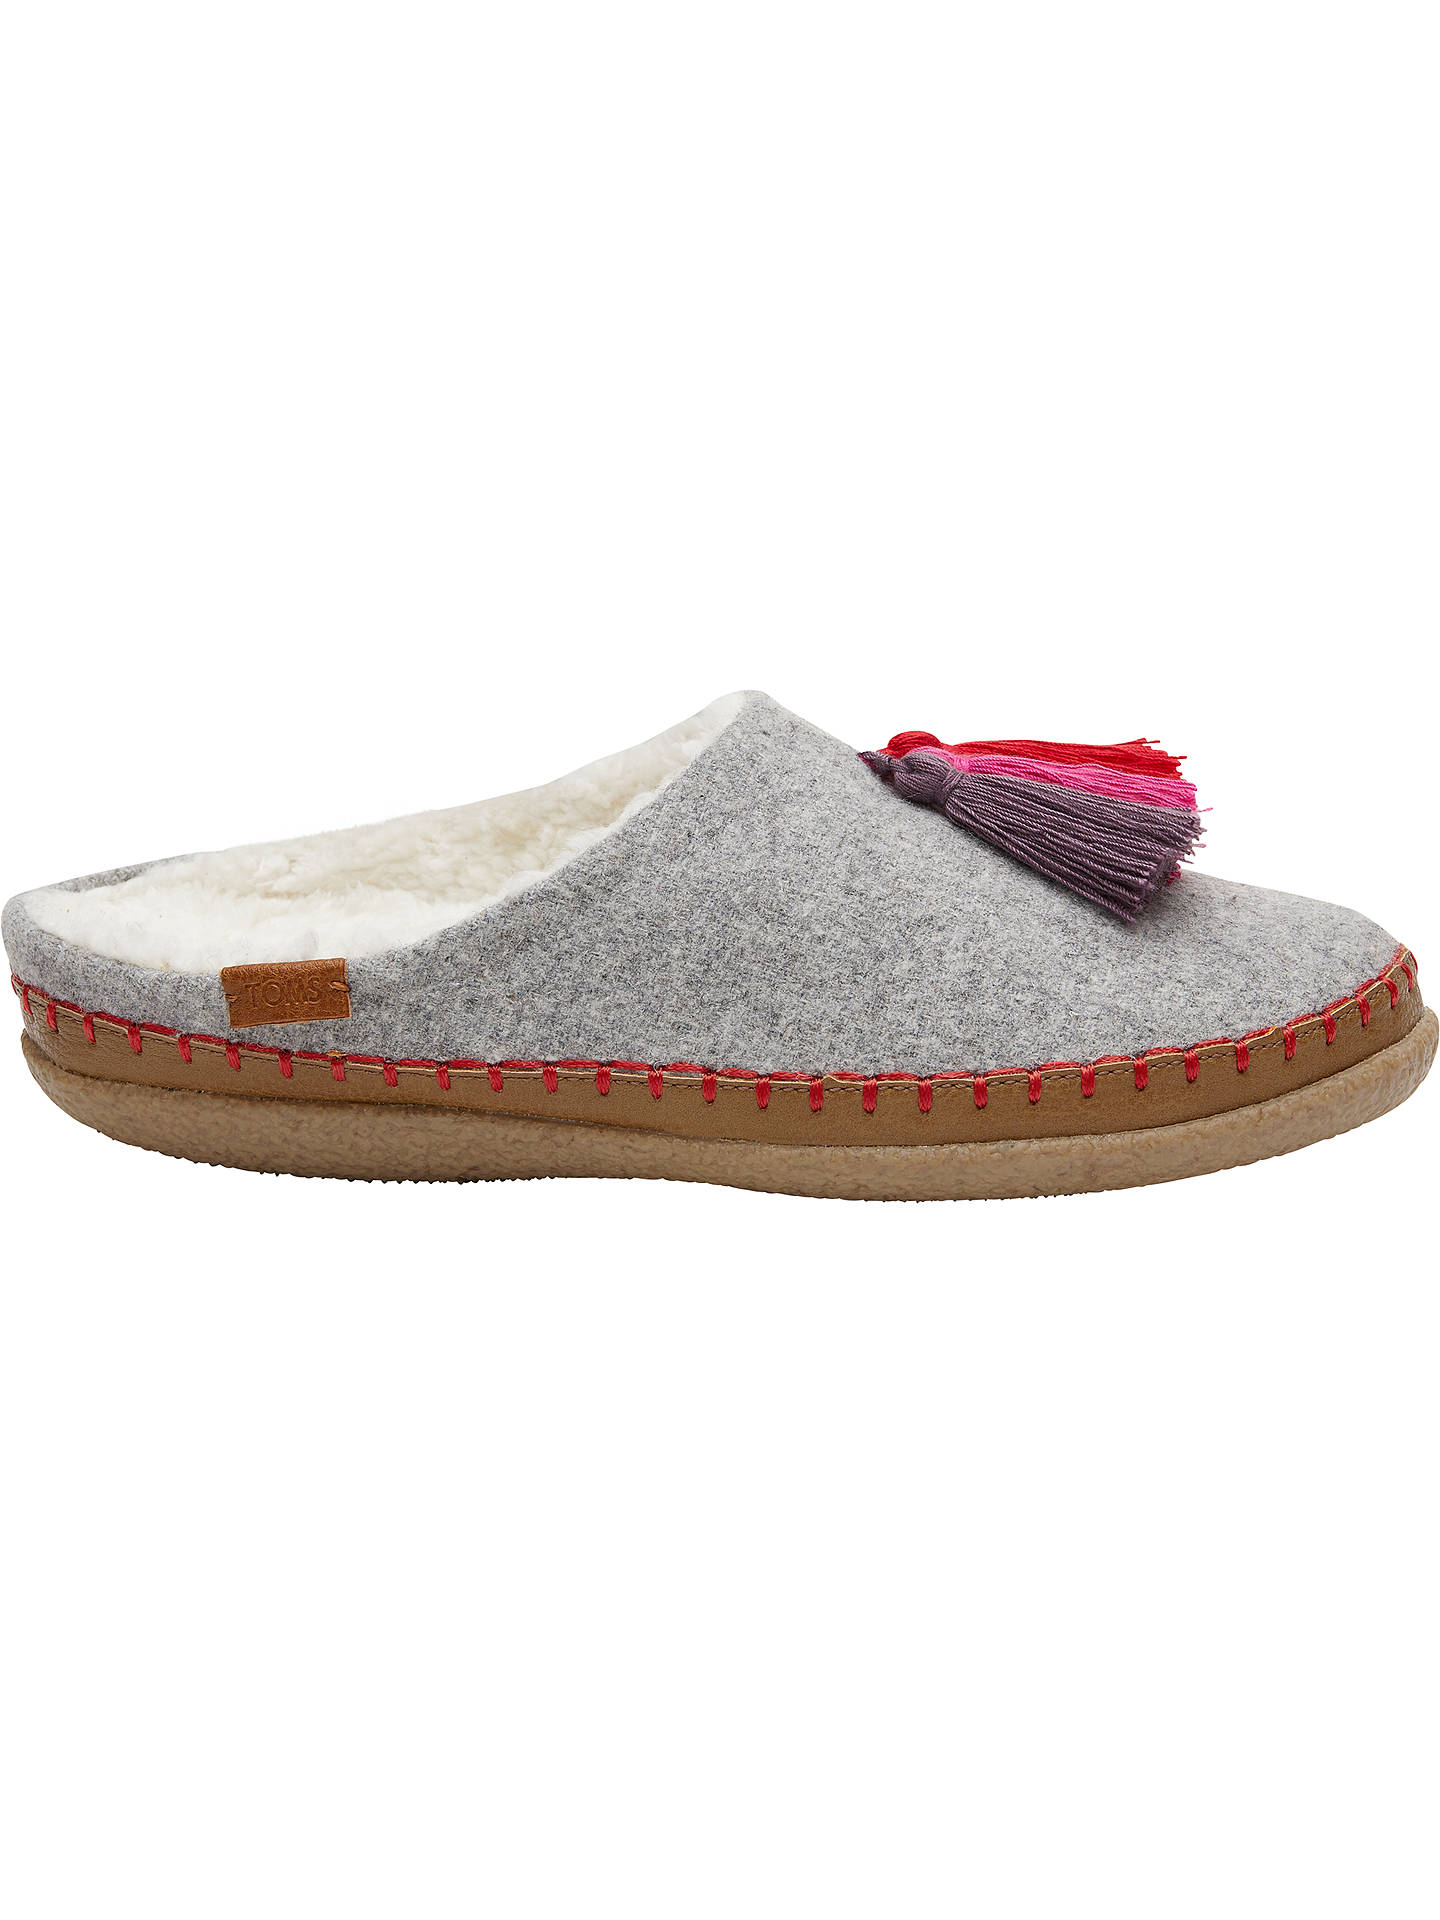 161d0c366f2 Buy TOMS Drizzle Slippers